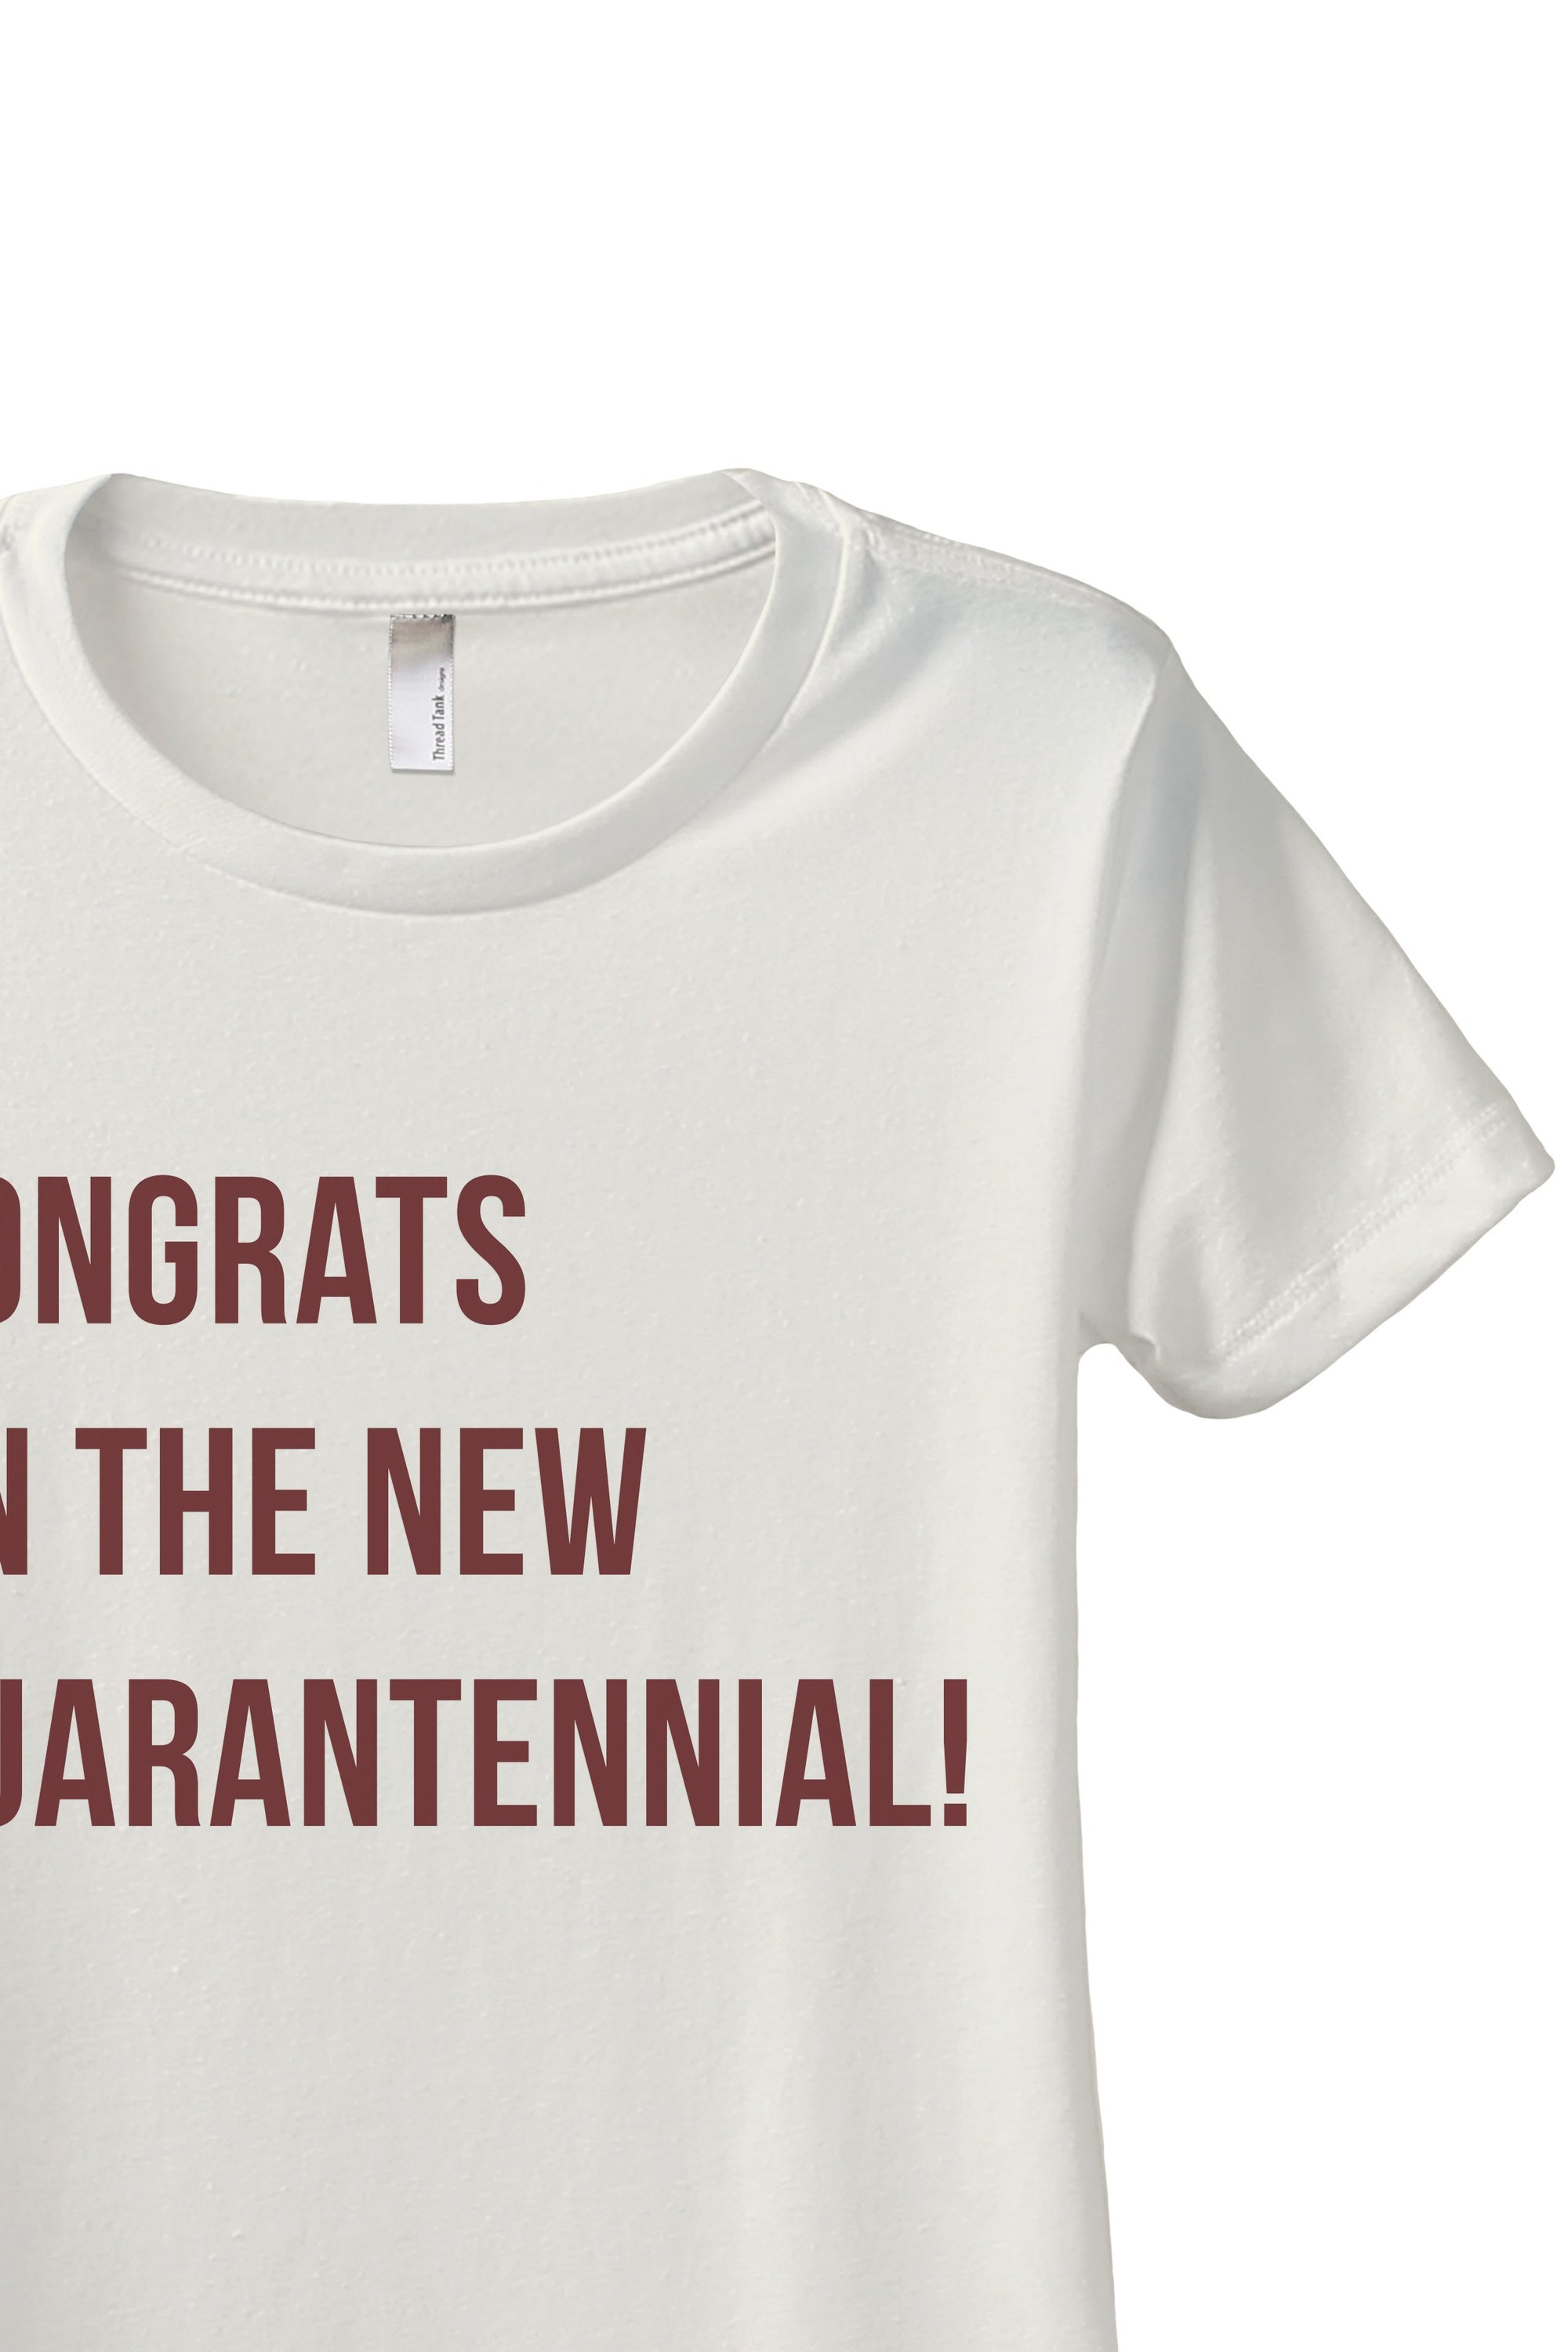 Congrats On The New Quarantennial Women's Relaxed Crewneck T-Shirt Top Tee Vintage White